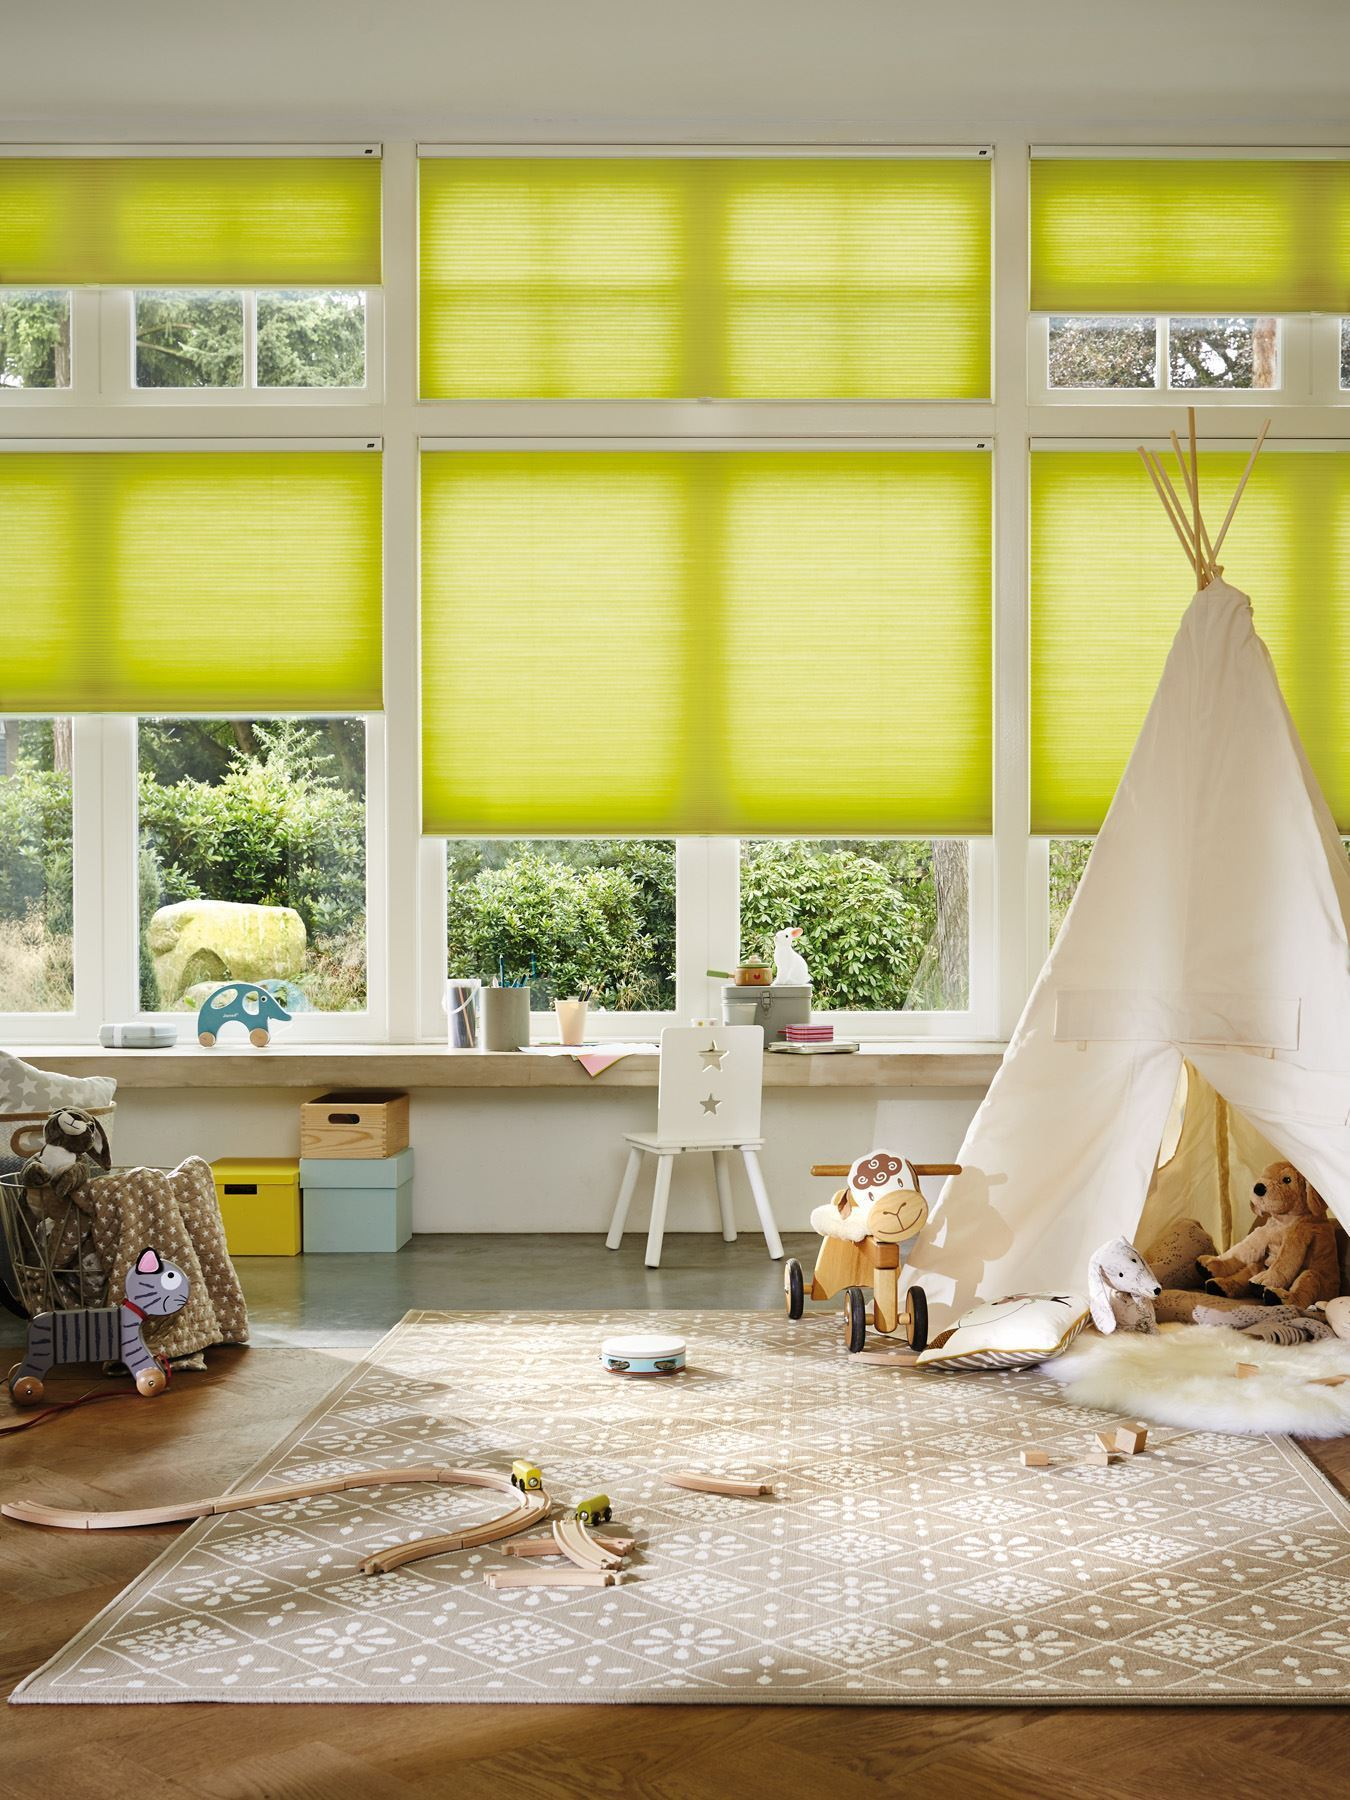 Luxaflex 150 Breed Luxaflex Duette Shades Met Handgreep Decodeal Nl Decodeal